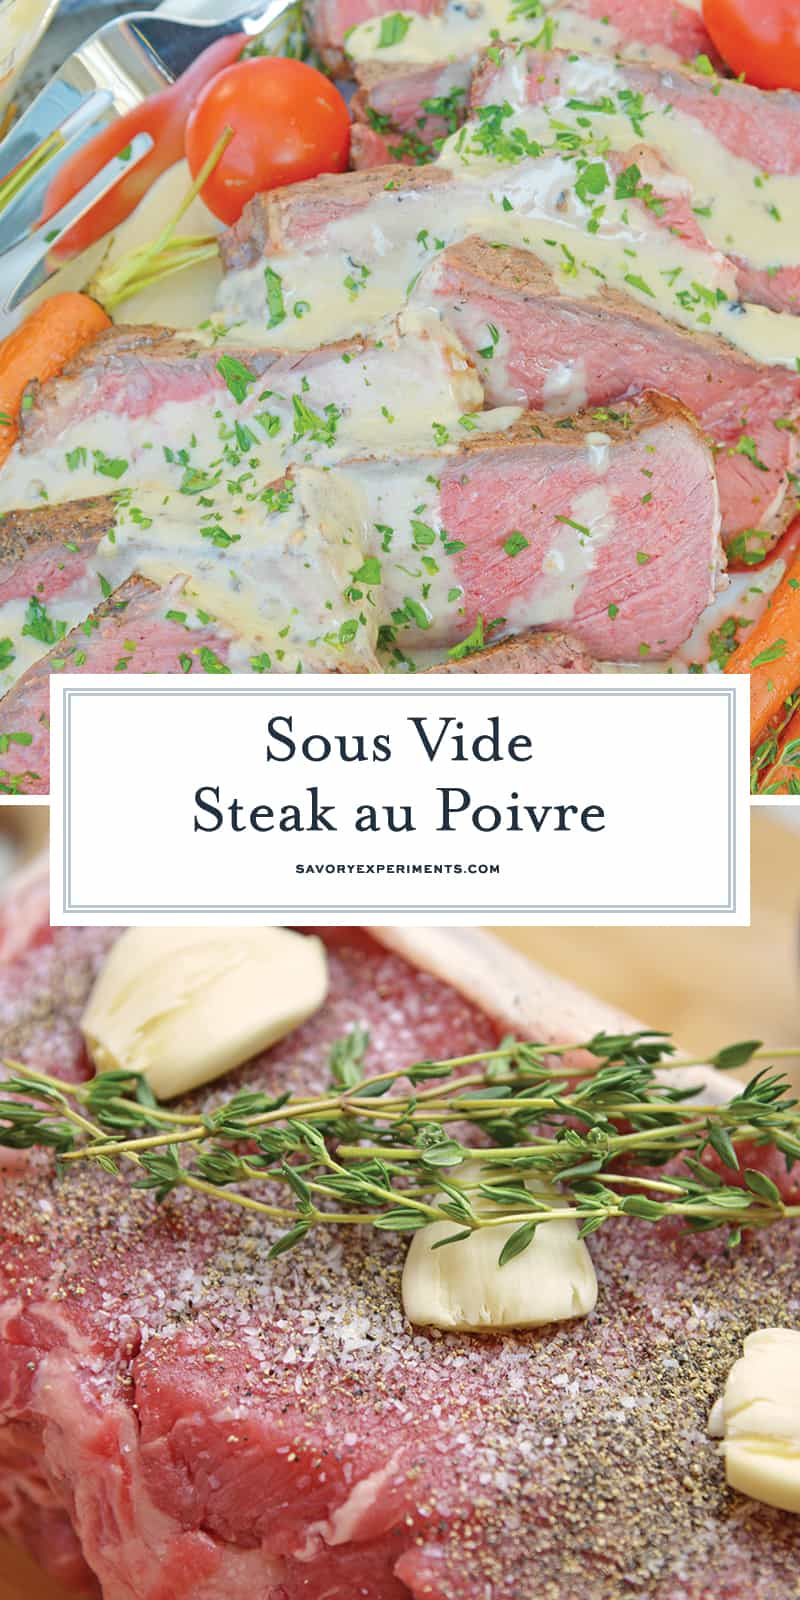 Sous Vide Steak Au Poivre is a sous-vide steak recipe worthy of an easy weeknight meal or a special occasion. New York strip is cooked to the perfect temperature and smothered in a creamy Au Poivre Peppercorn Sauce. #sousvidesteak #steakaupoirve www.savoryexperiments.com